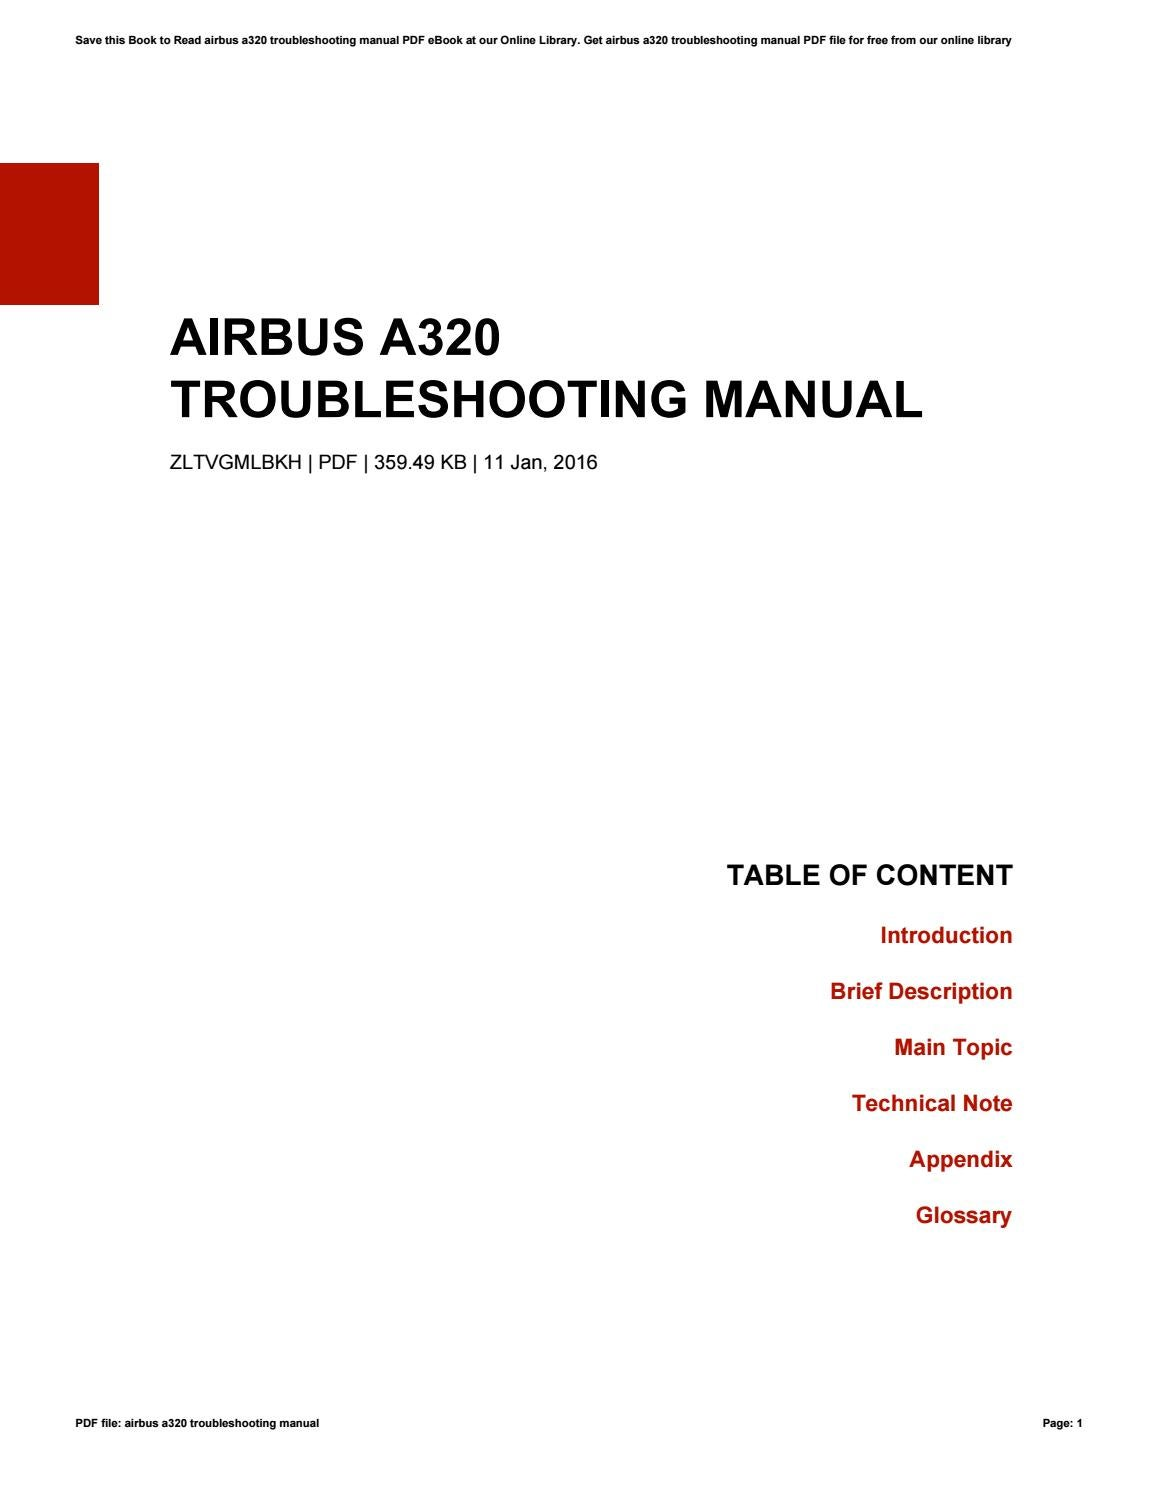 Airbus a320 troubleshooting manual by ernestmcdowell4614 issuu sciox Images